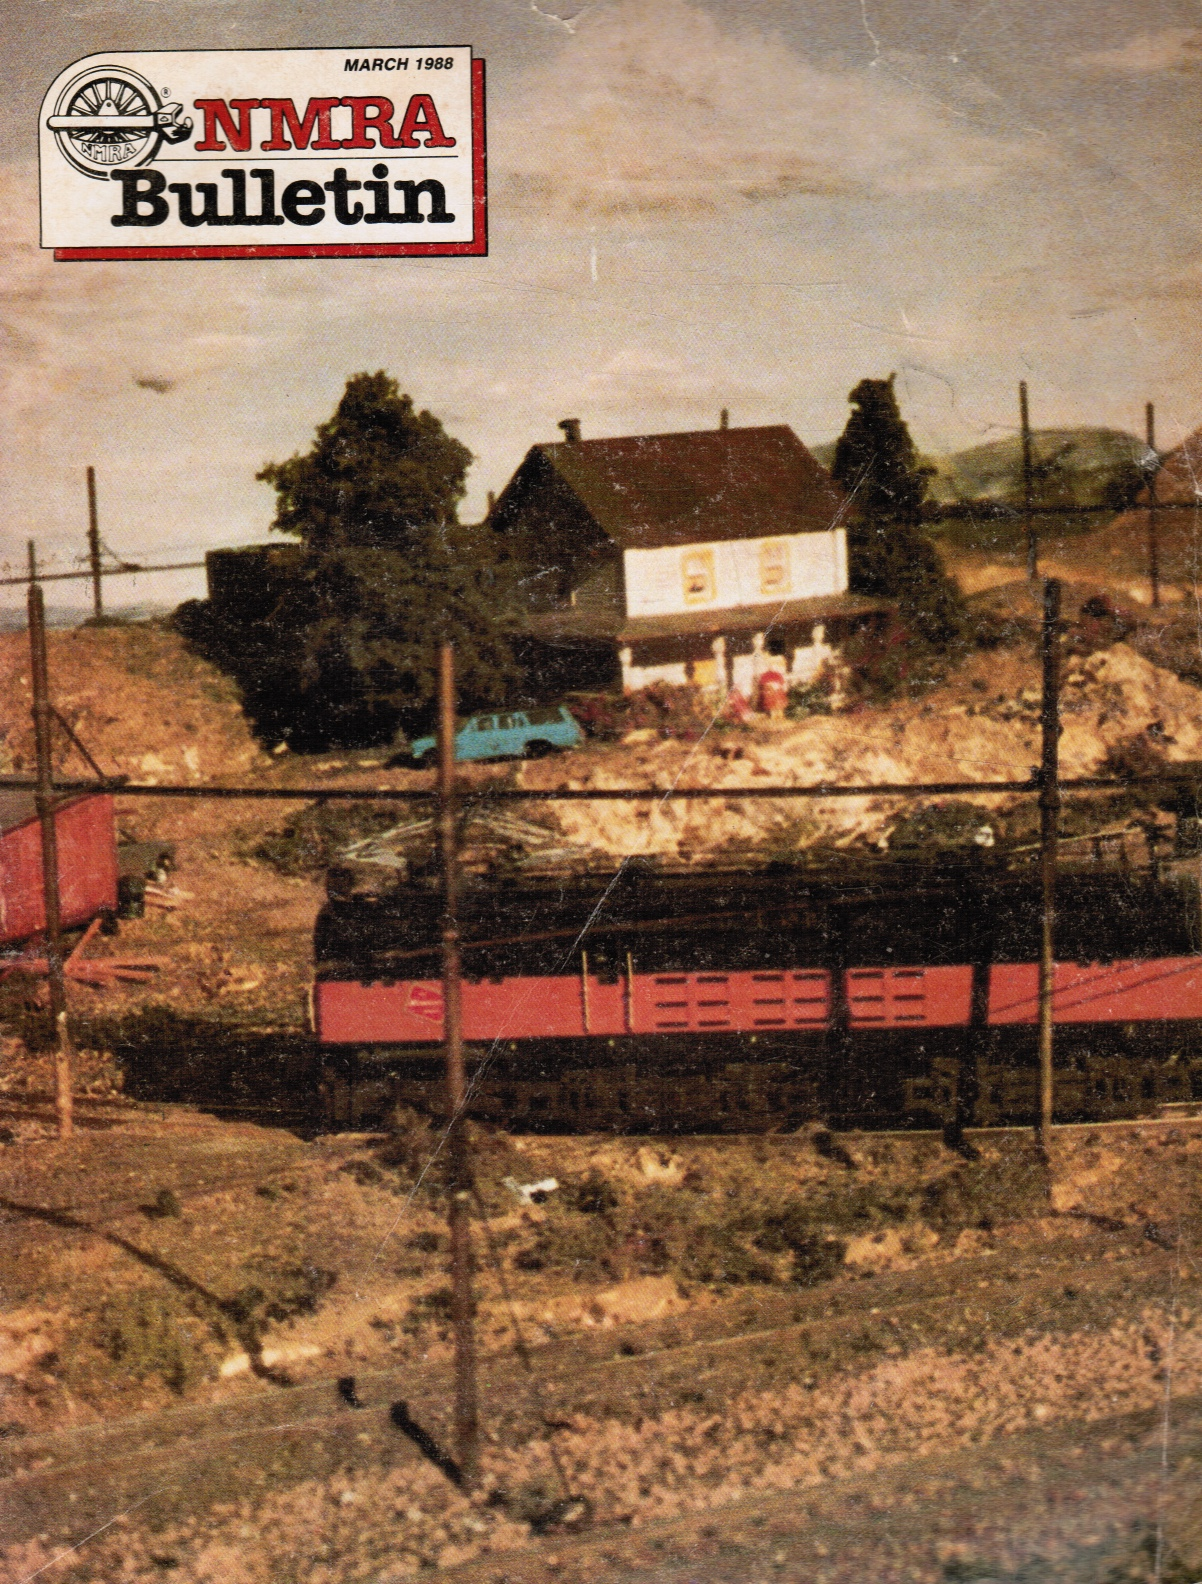 Image for NMRA [National Model Railroad Association] Bulletin, Vol.53, No 7, March 1988